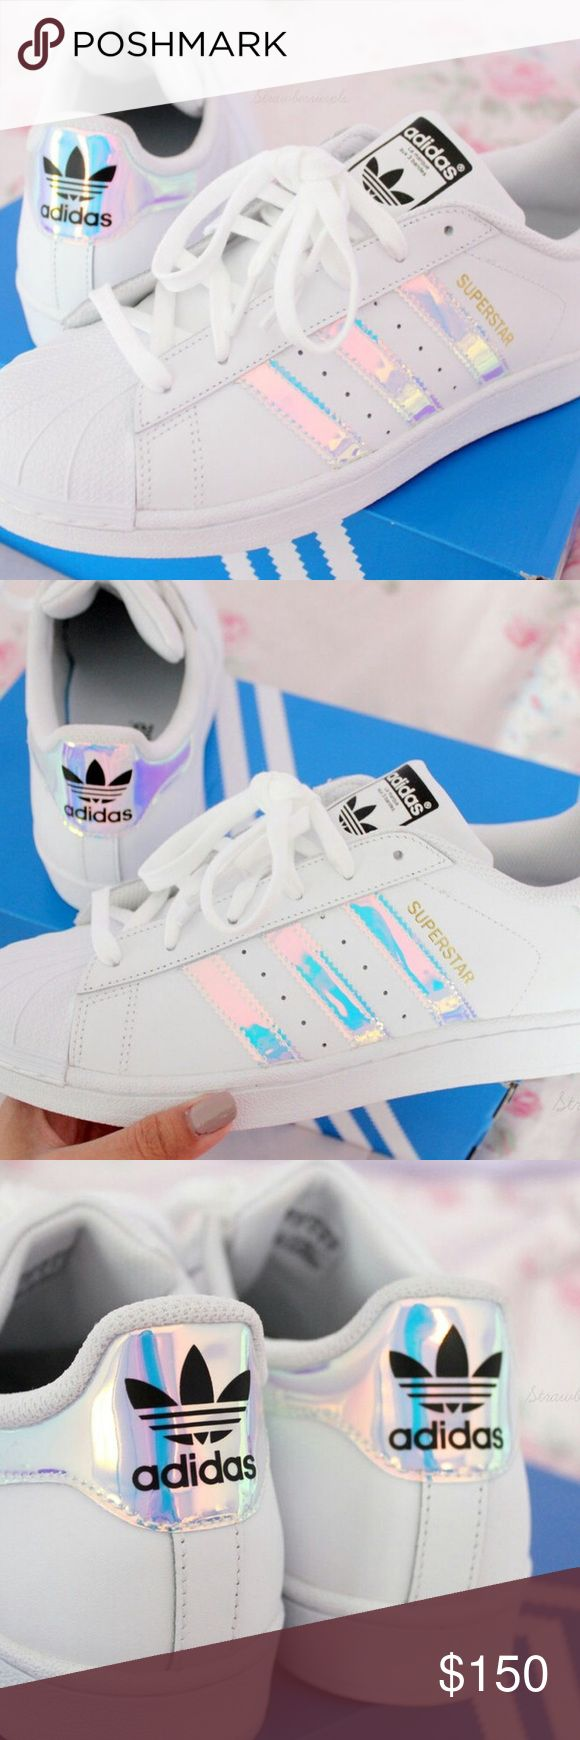 adidas superstar white silver met core black cute adidas with roses shoes for girls